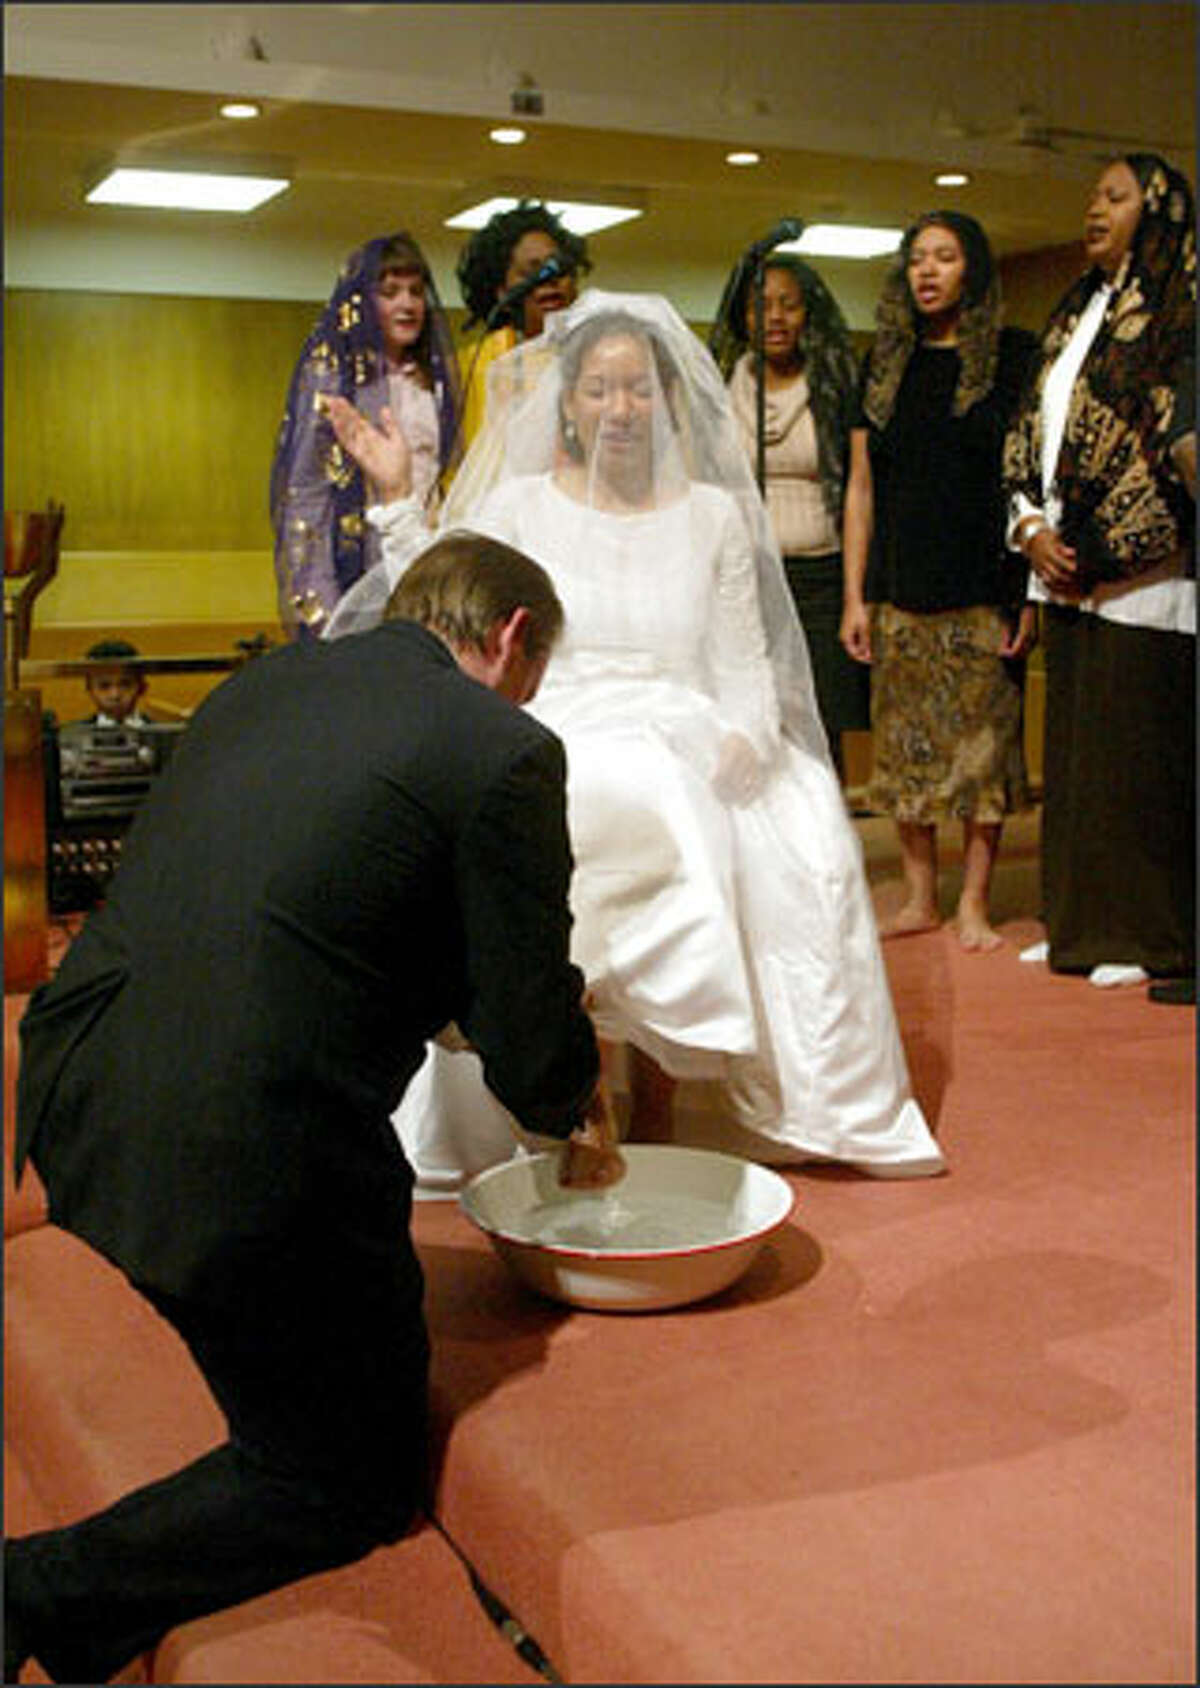 Brian Ostertag washes Susana Urbaez's feet during their Thanksgiving Day ceremony. Ostertag wanted to do this as a symbol of his love and of Christian humility.